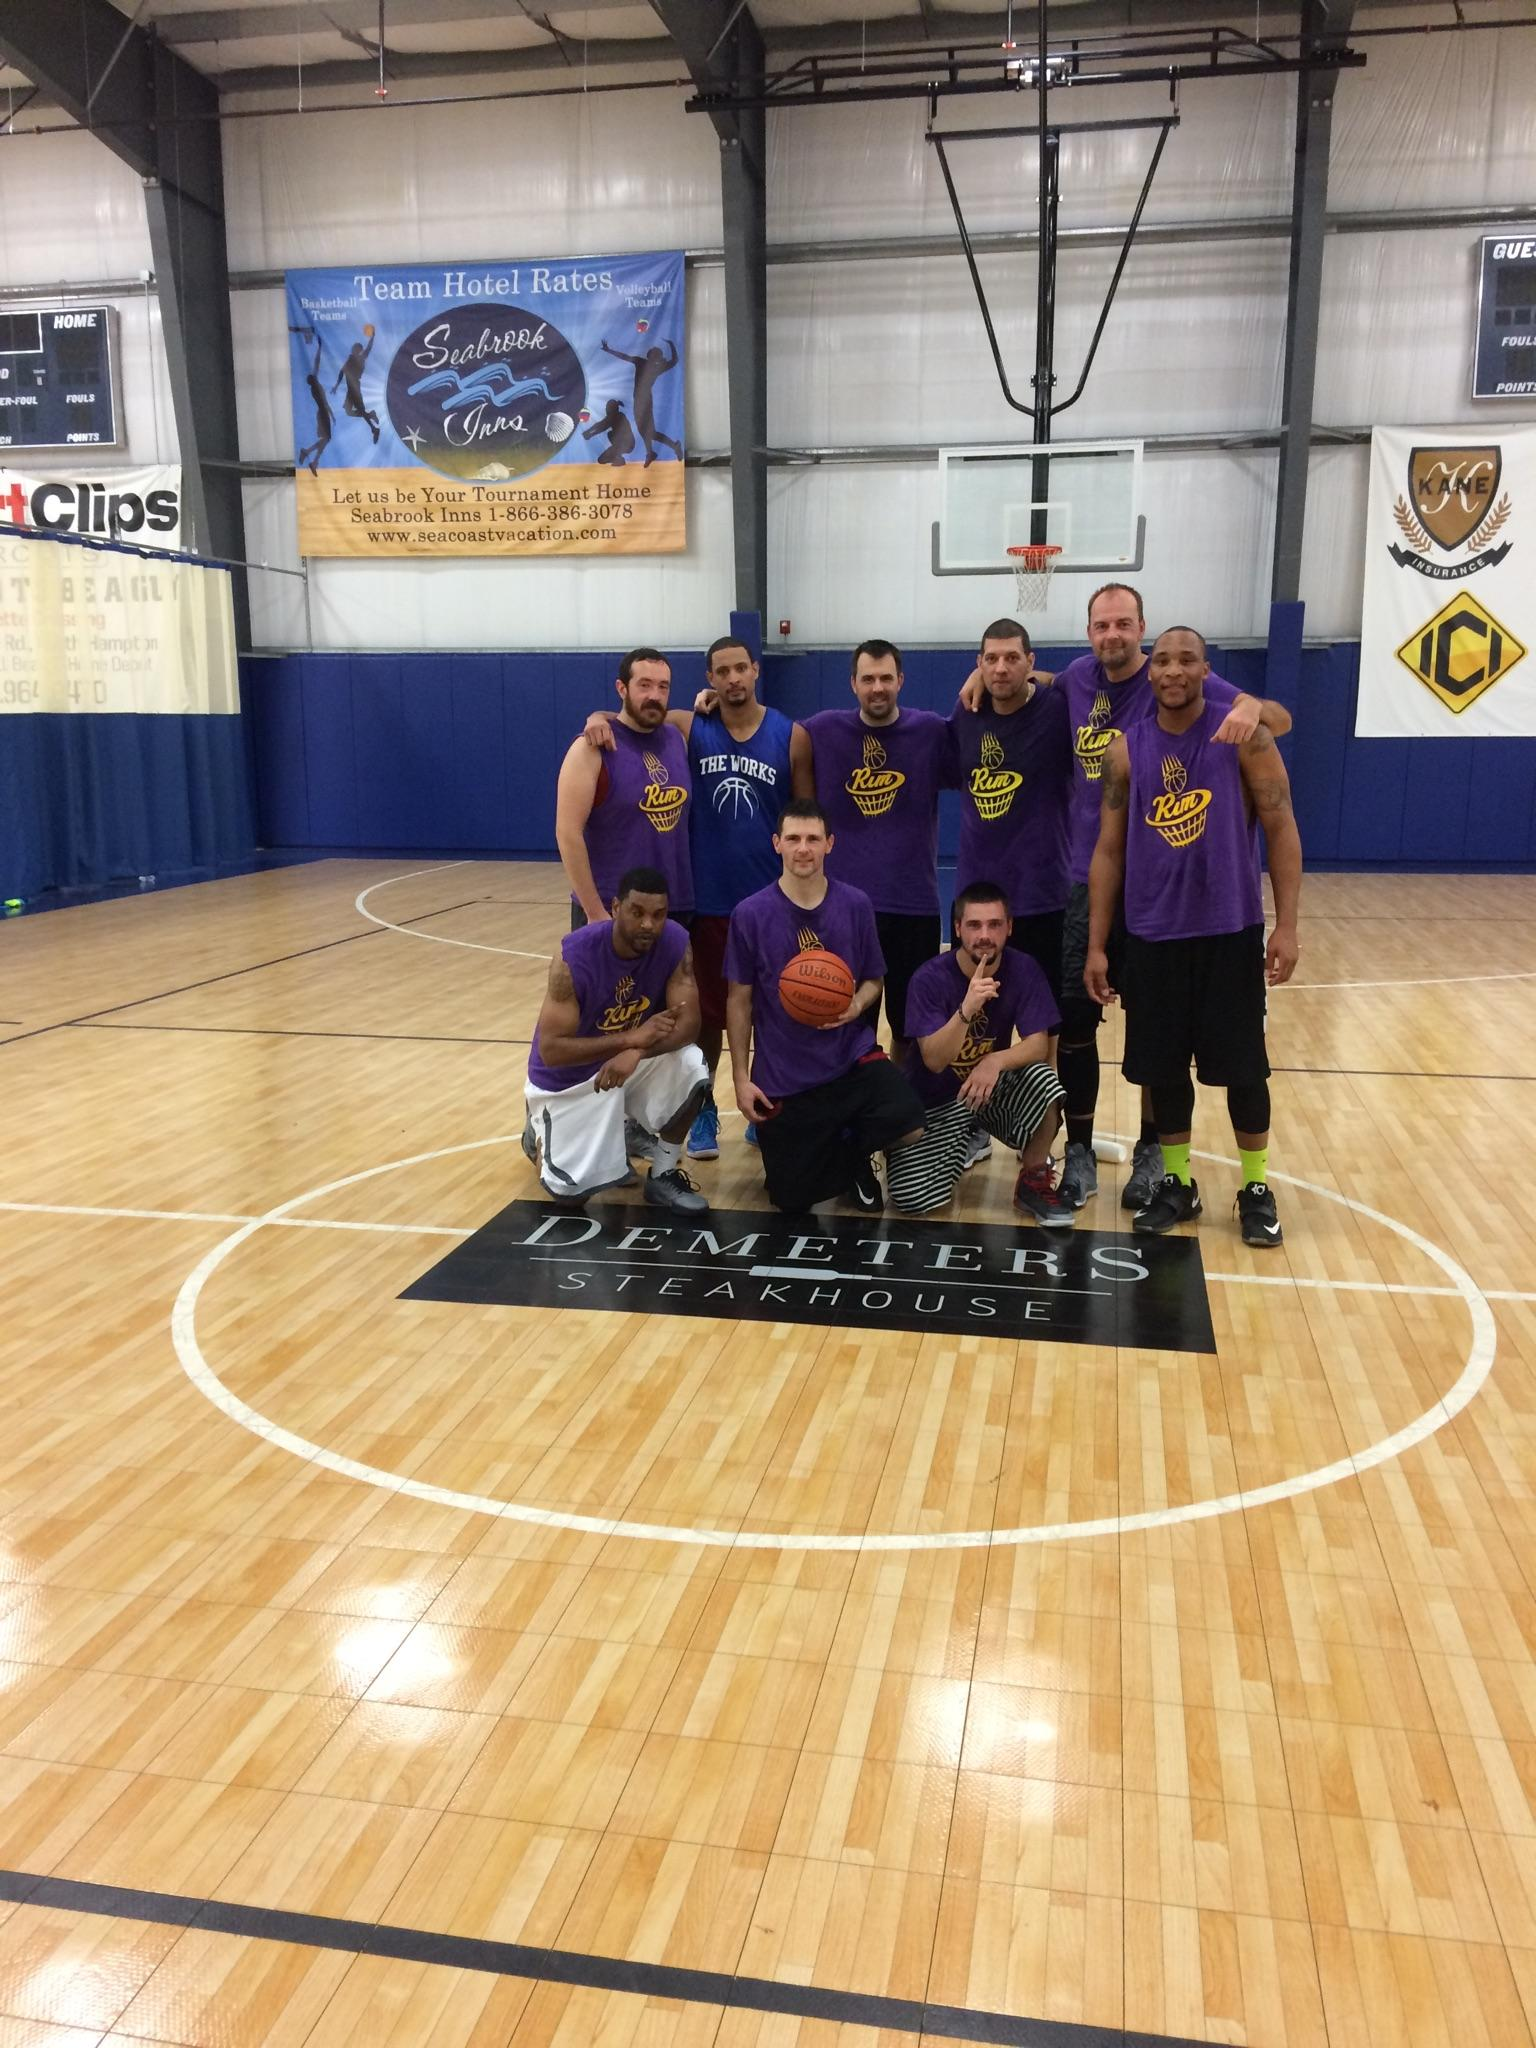 Fall 2015 Div 1 Champs- Demeters